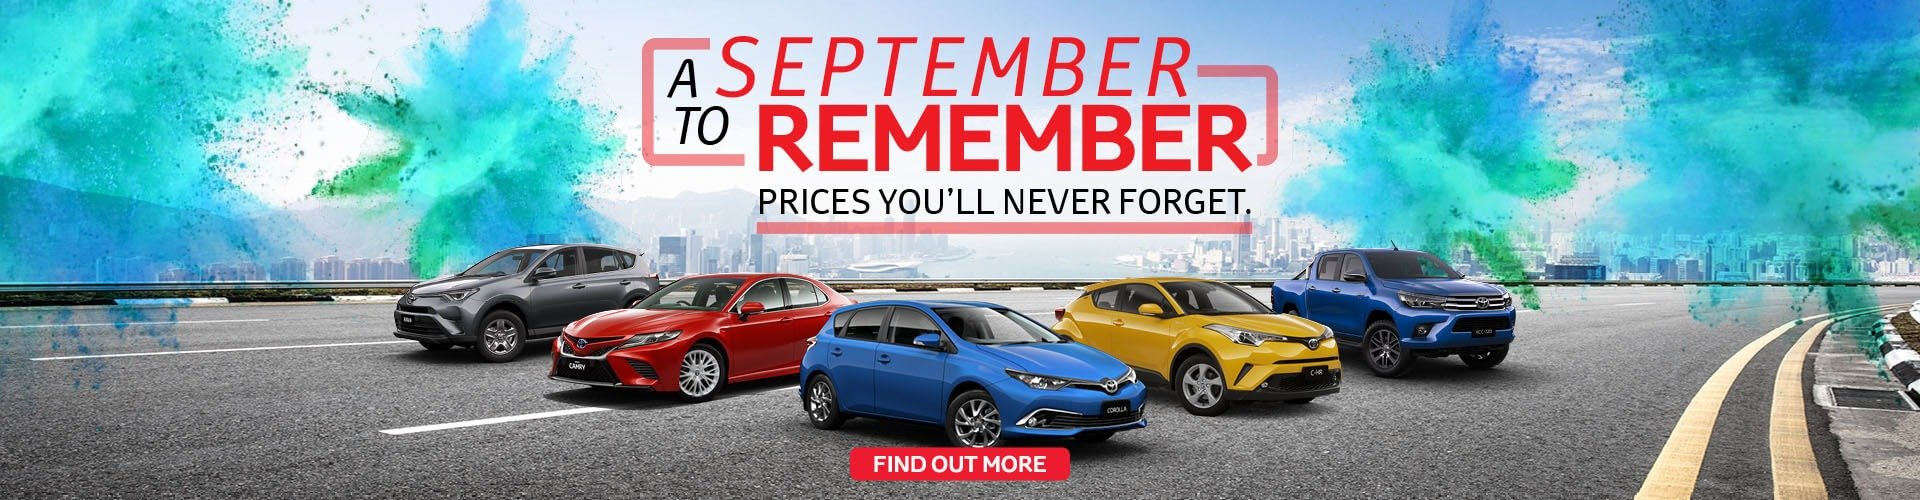 A September to Remember